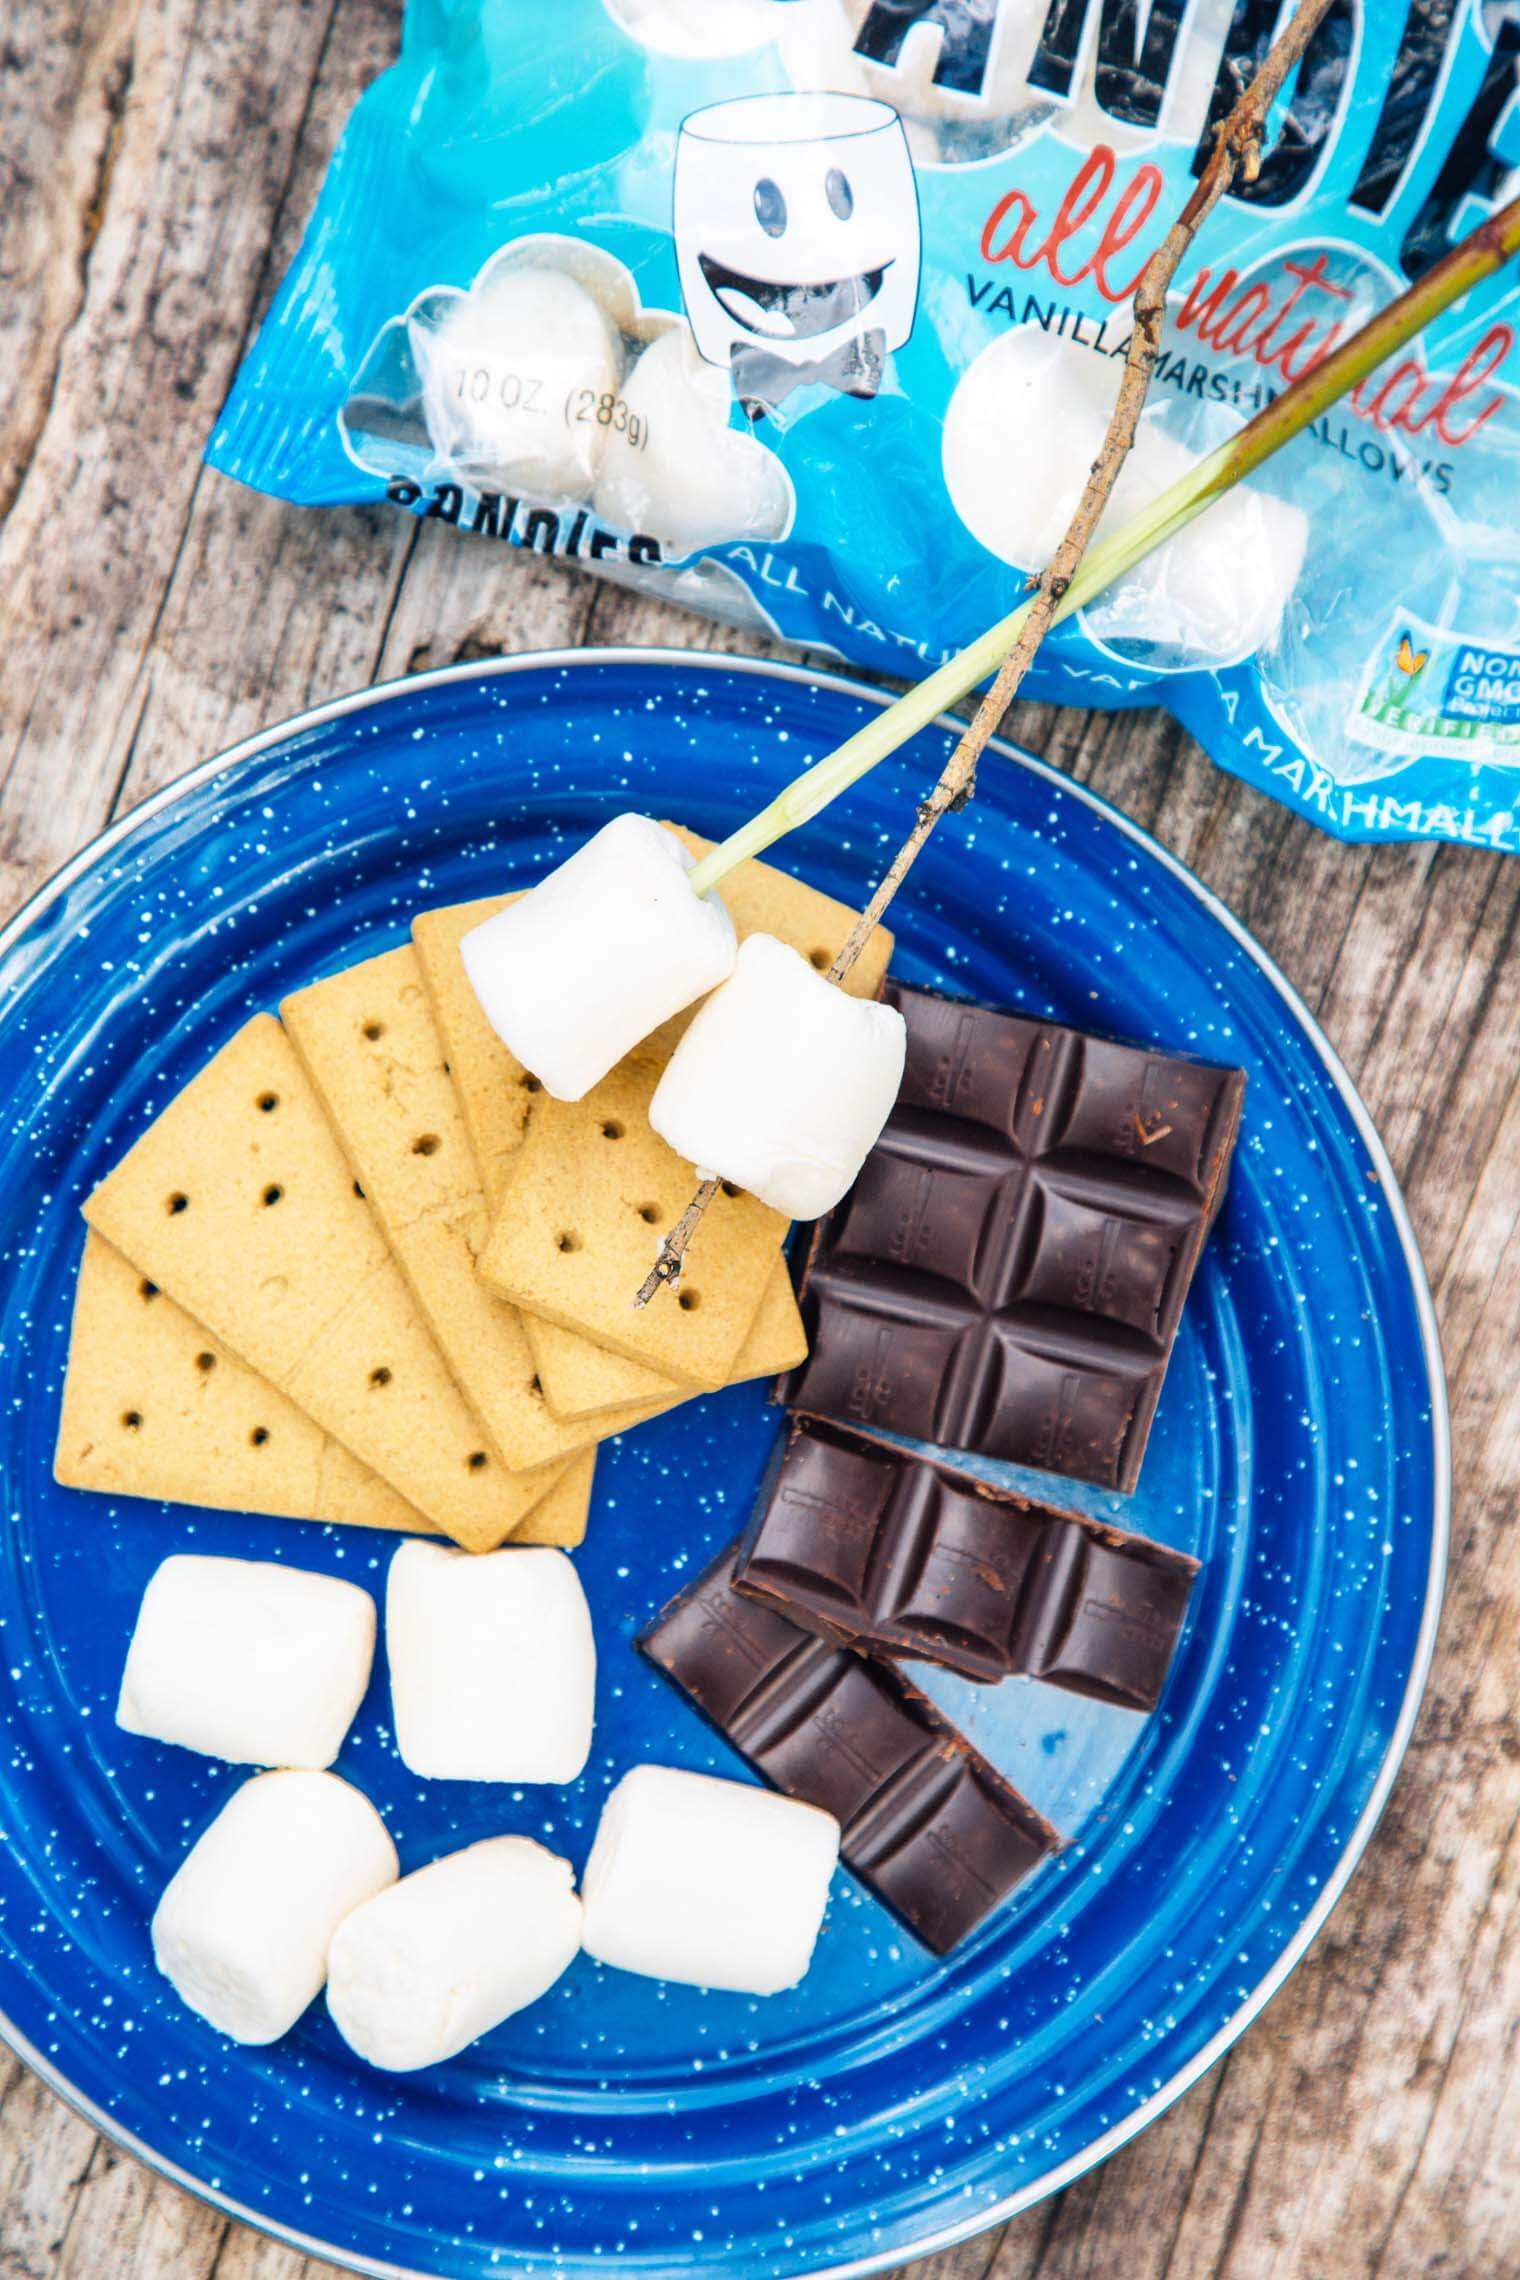 Ingredients for vegan s'mores